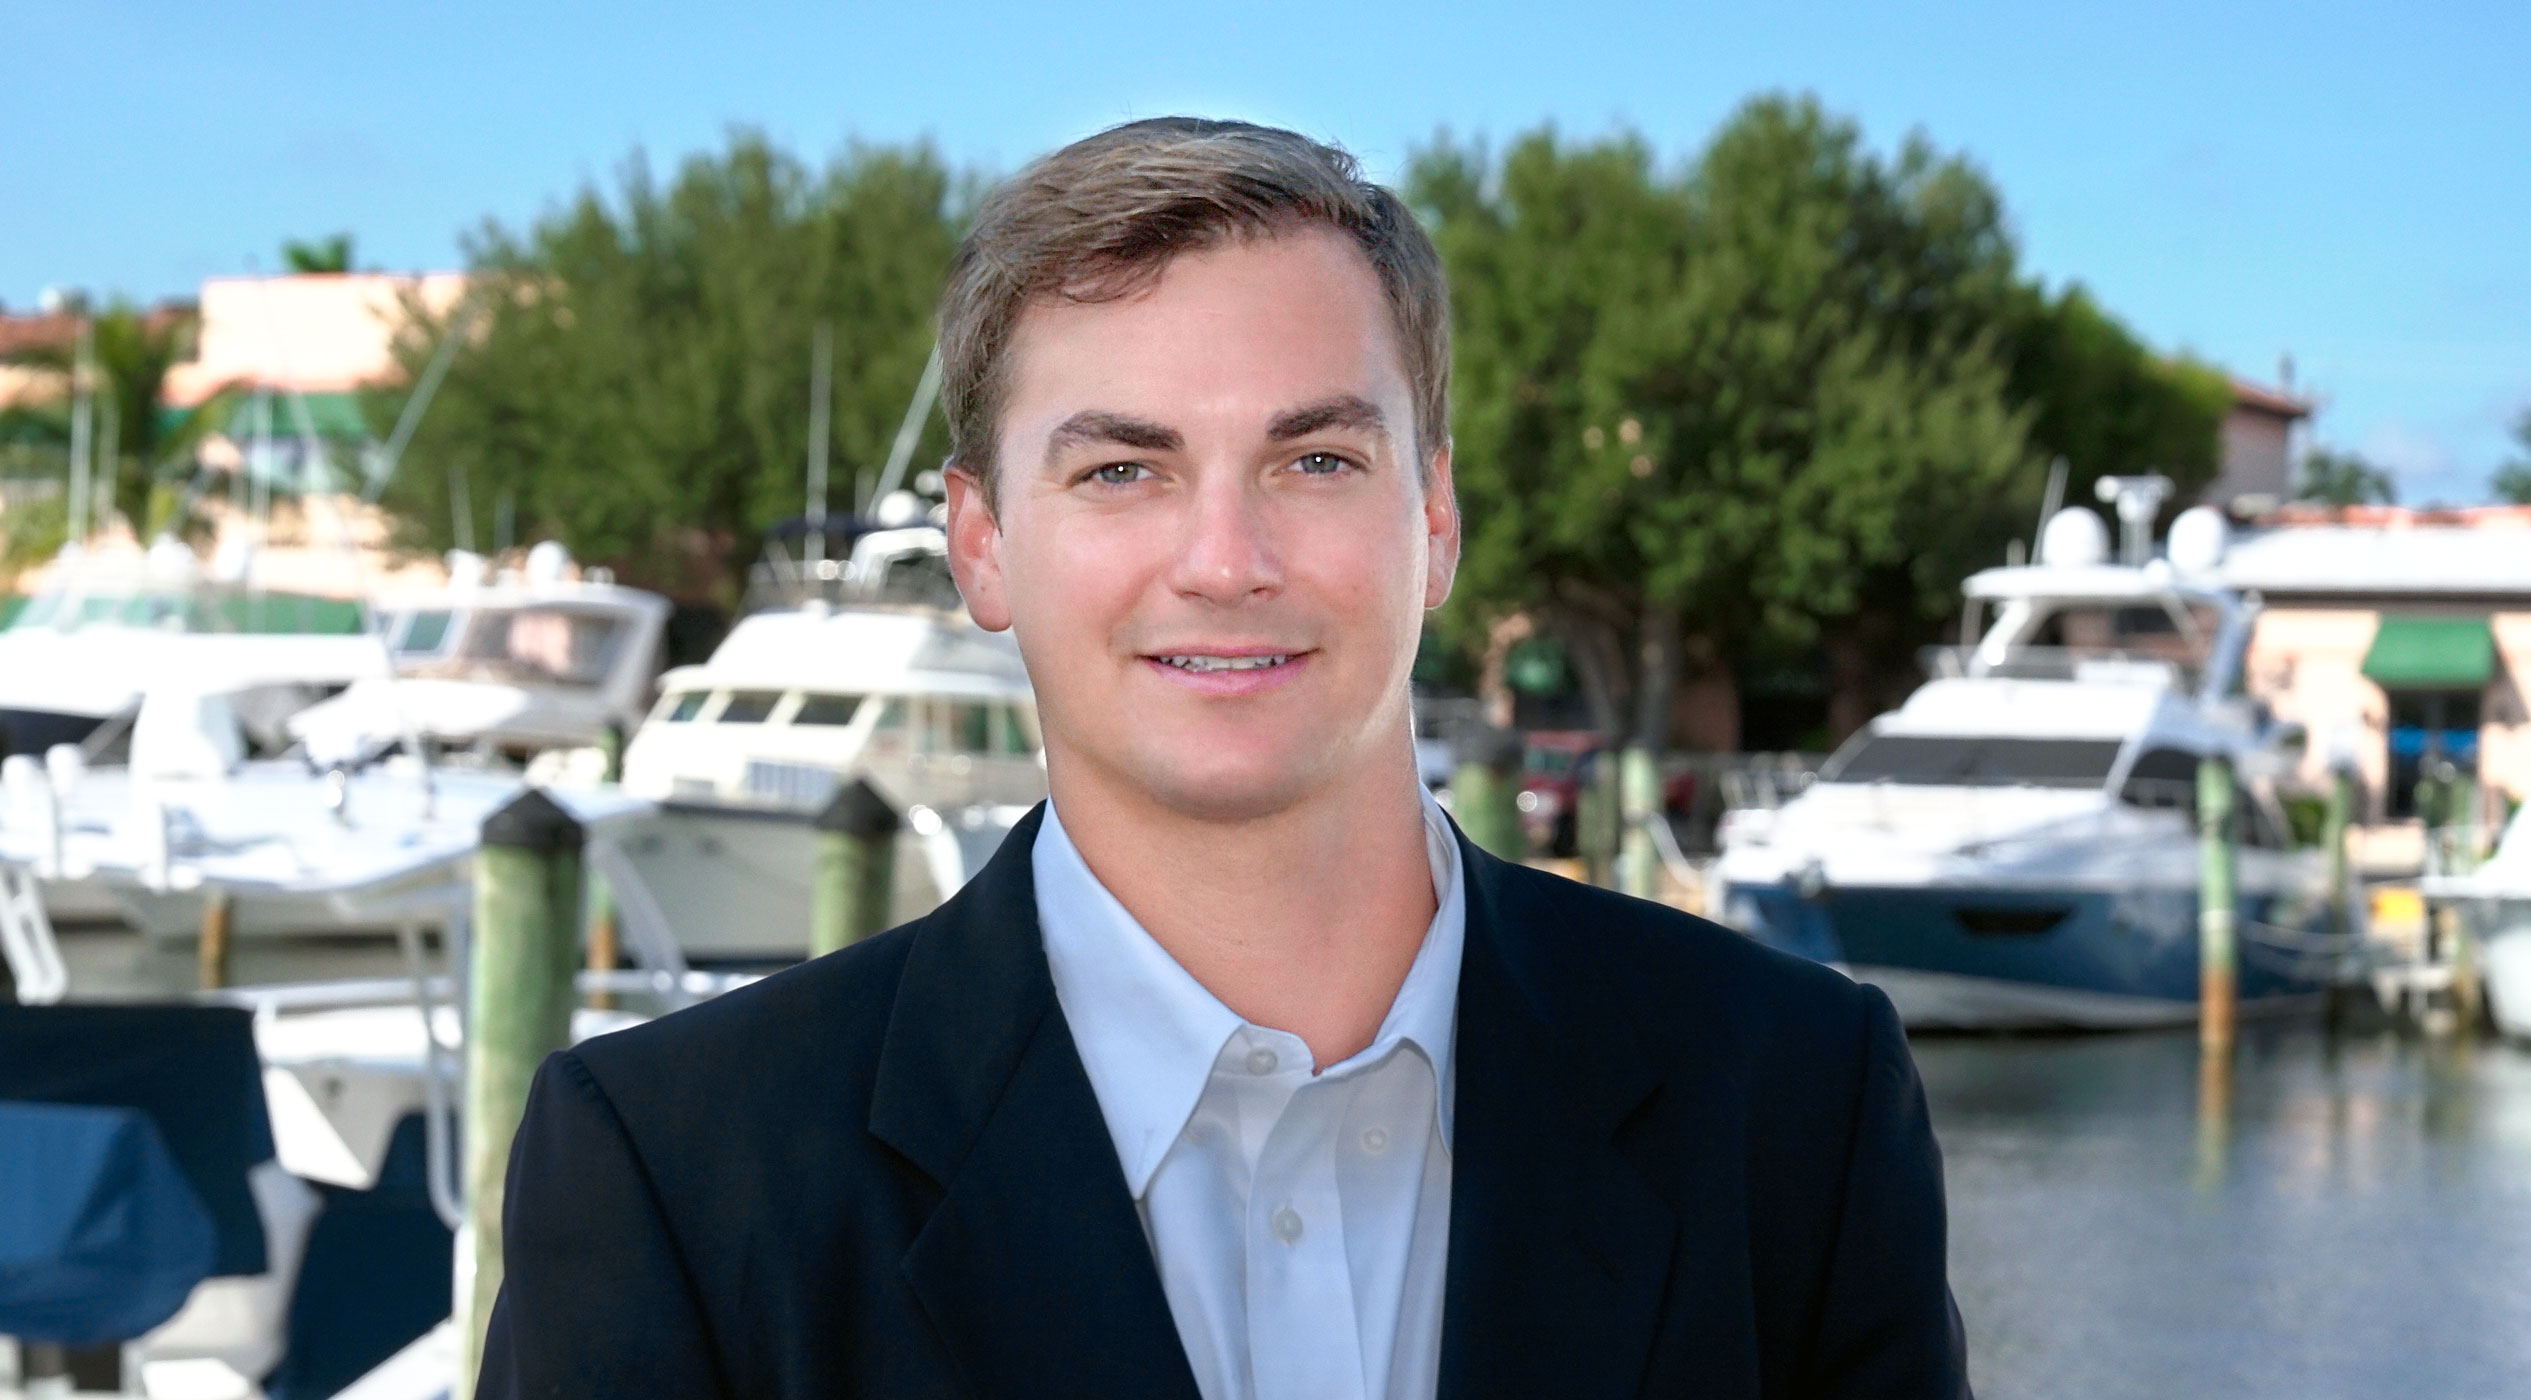 Forrest Robertson standing in marina with yachts behind him